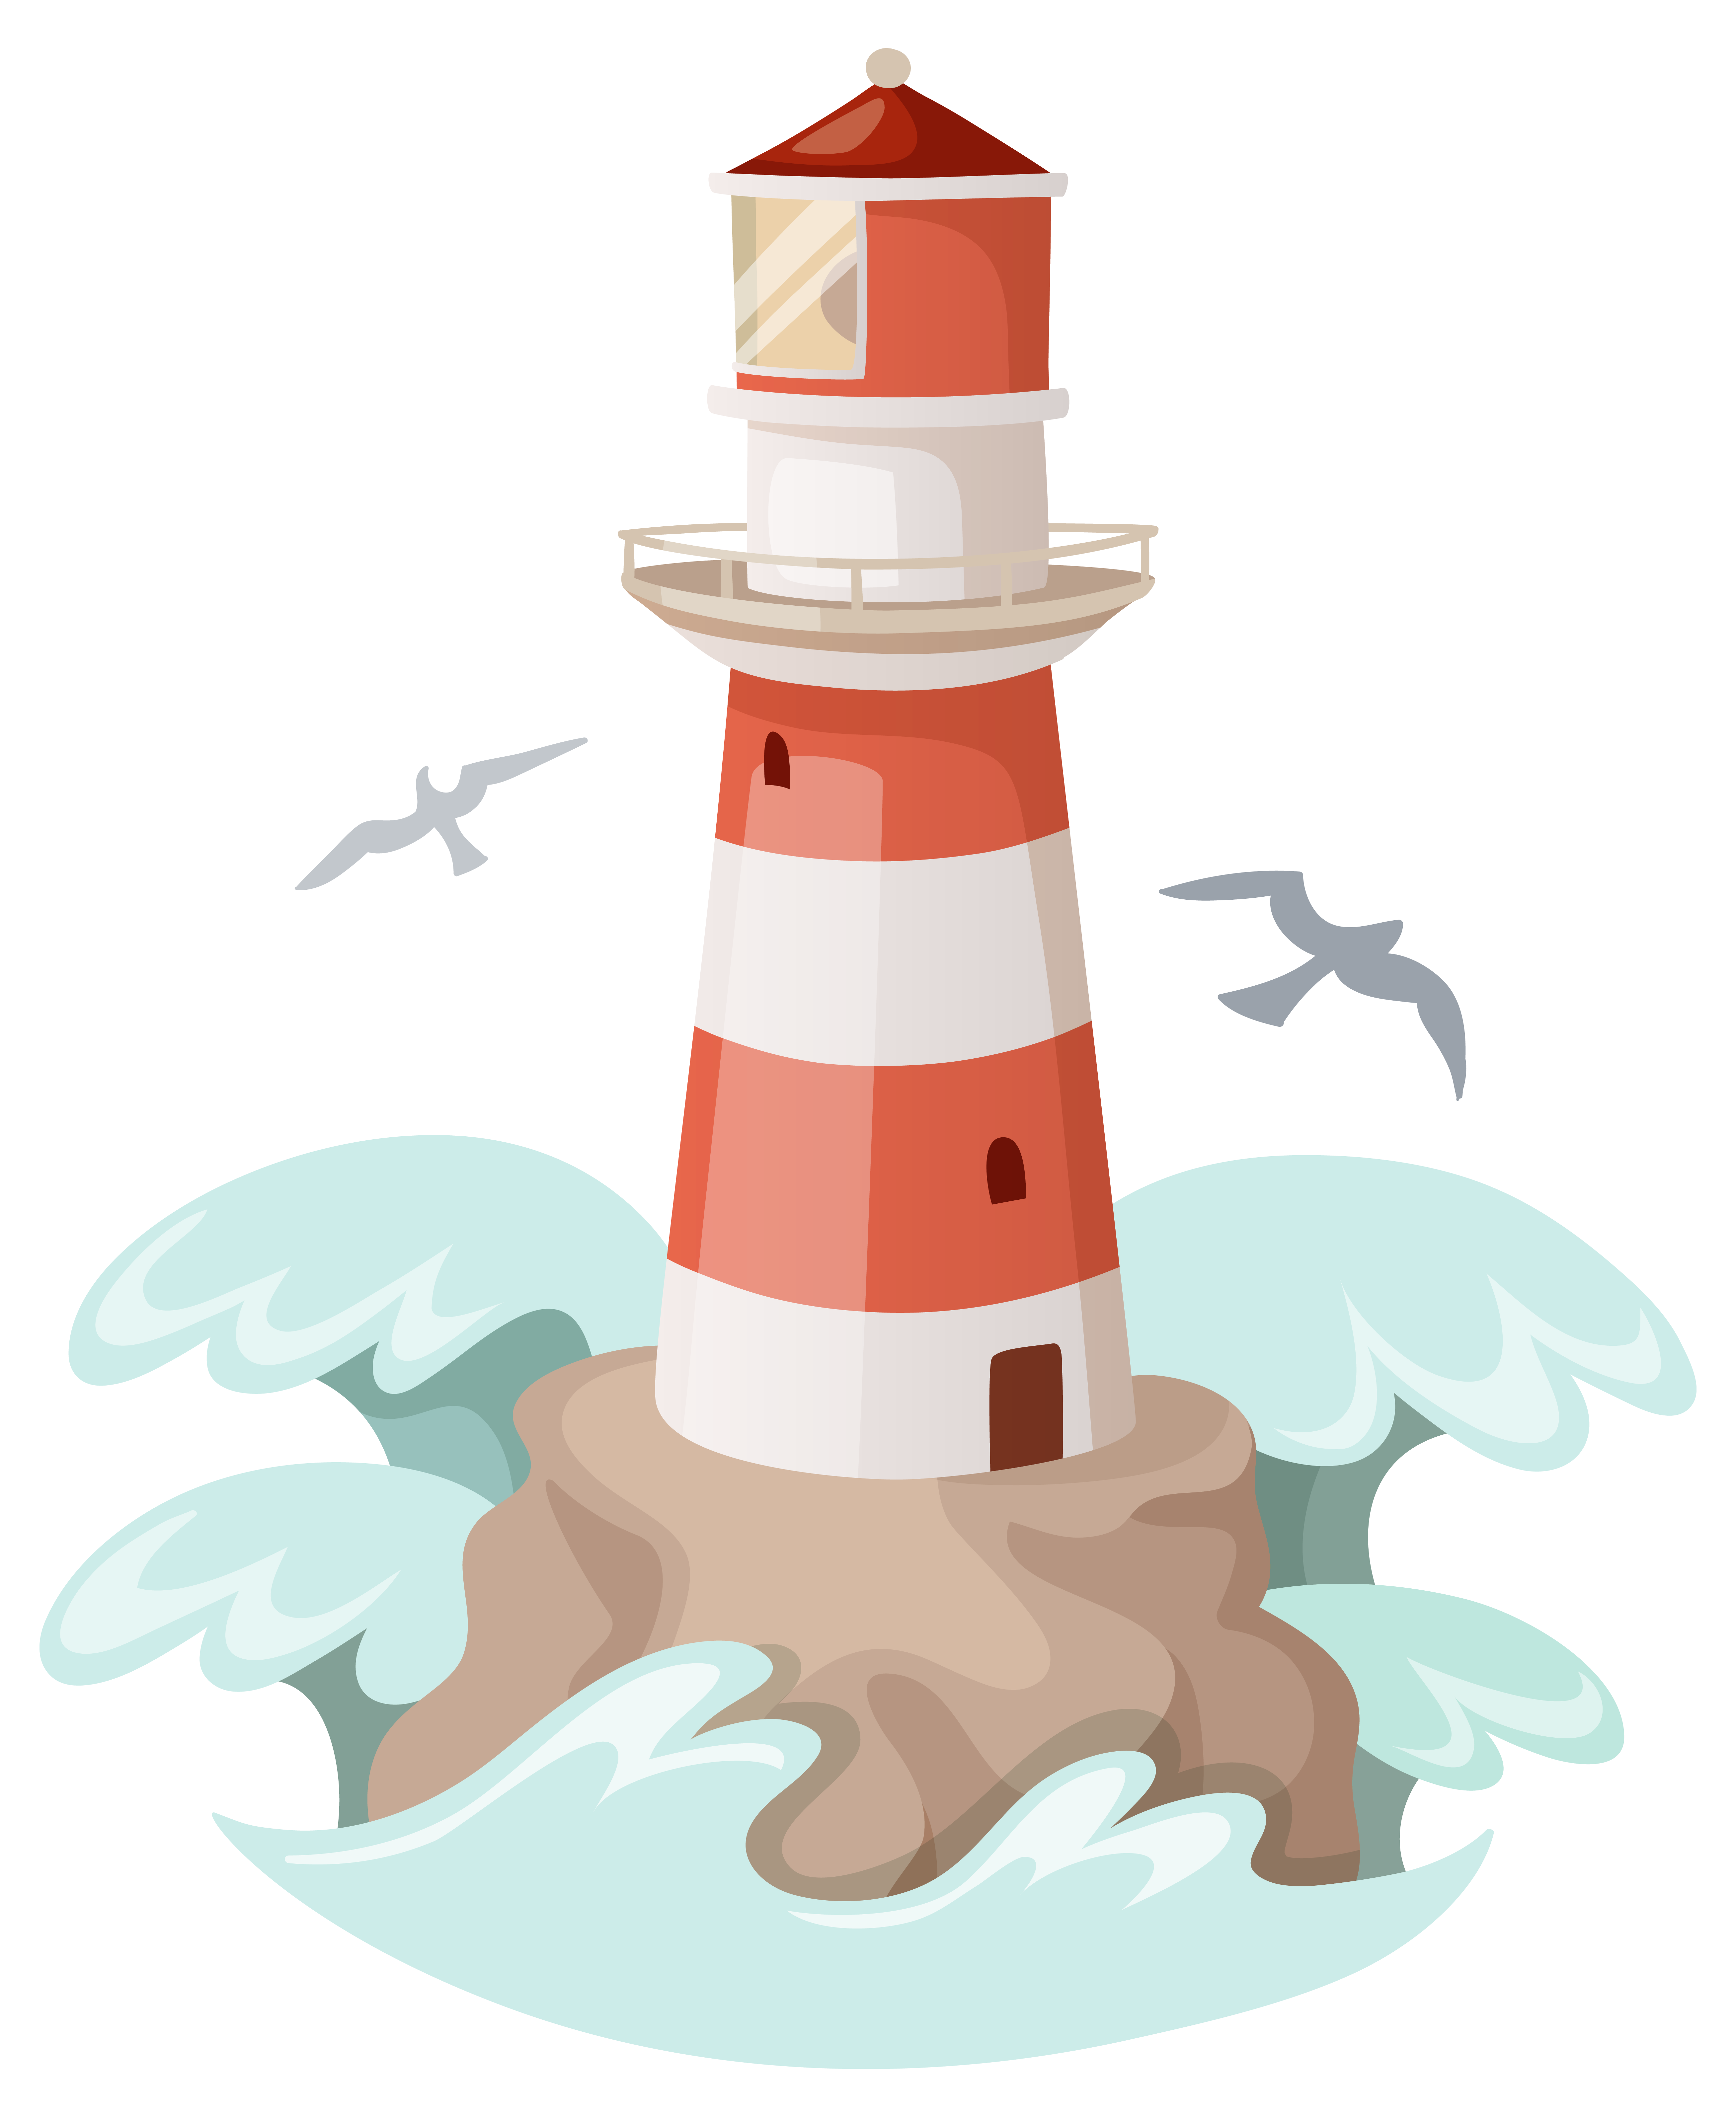 Lighthouse Clipart & Lighthouse Clip Art Images.